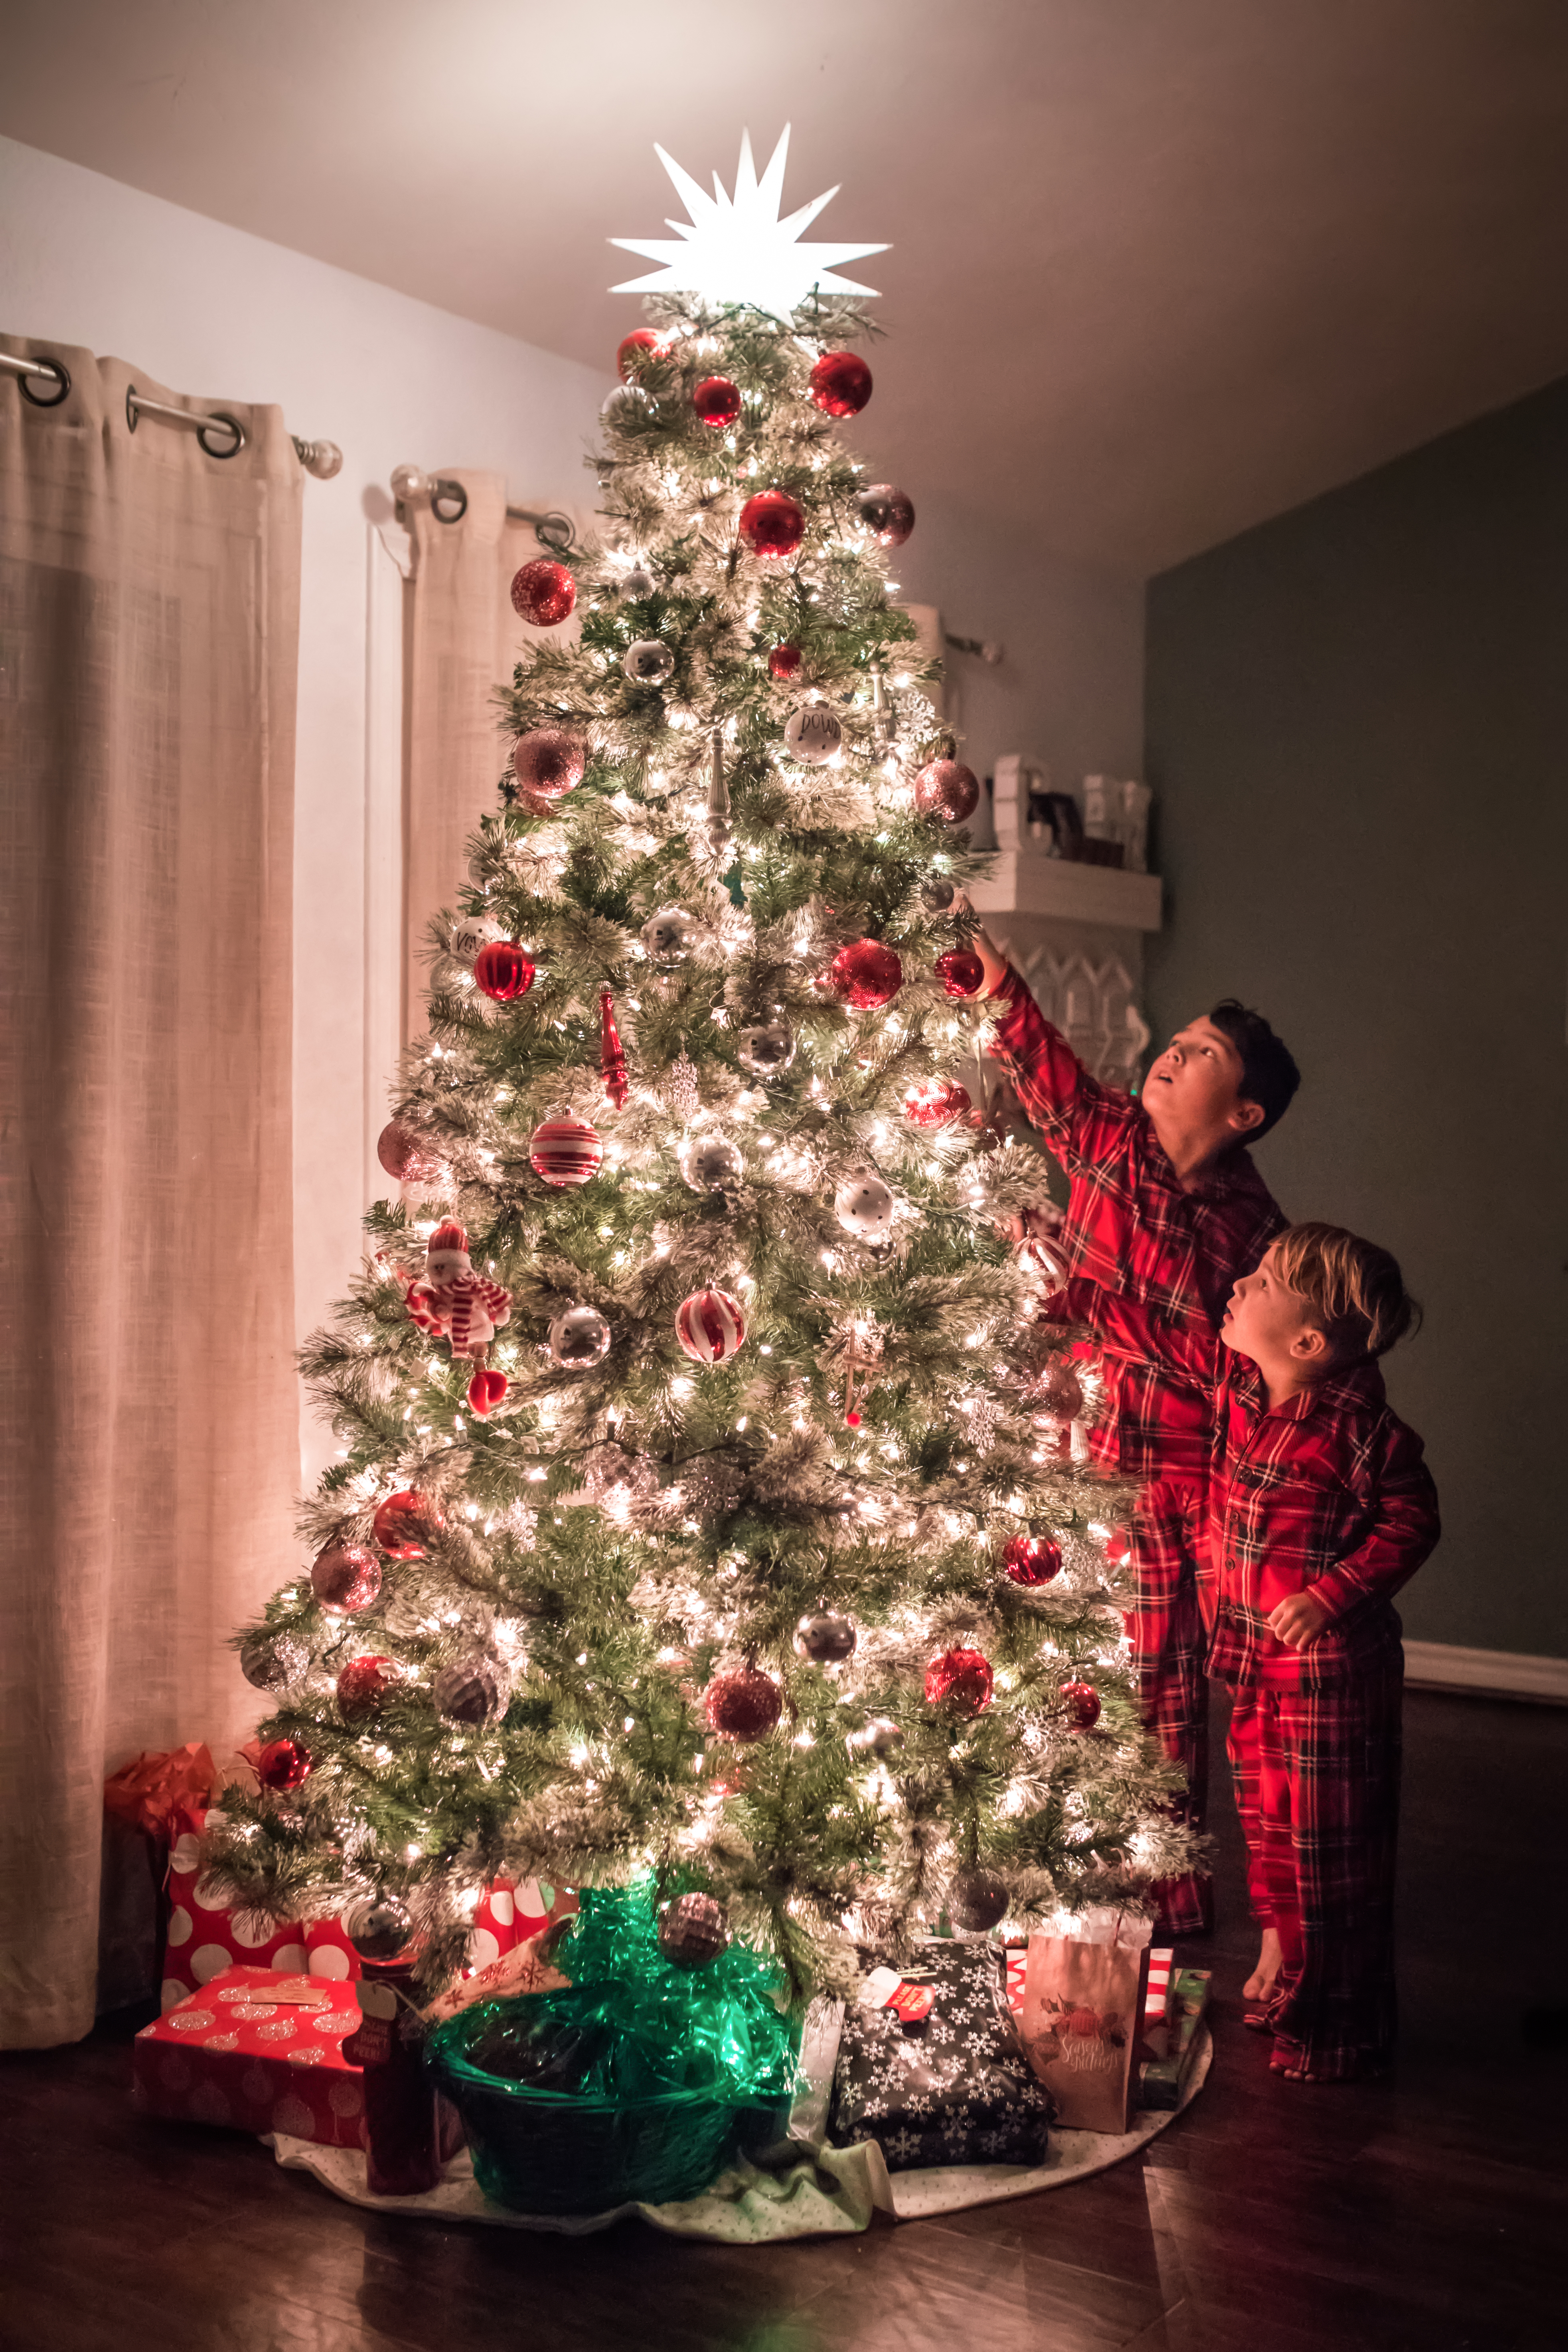 2018 Christmas Tree Sessions By All Colors Photography San Diego Newborn Photographer All Colorsphotography